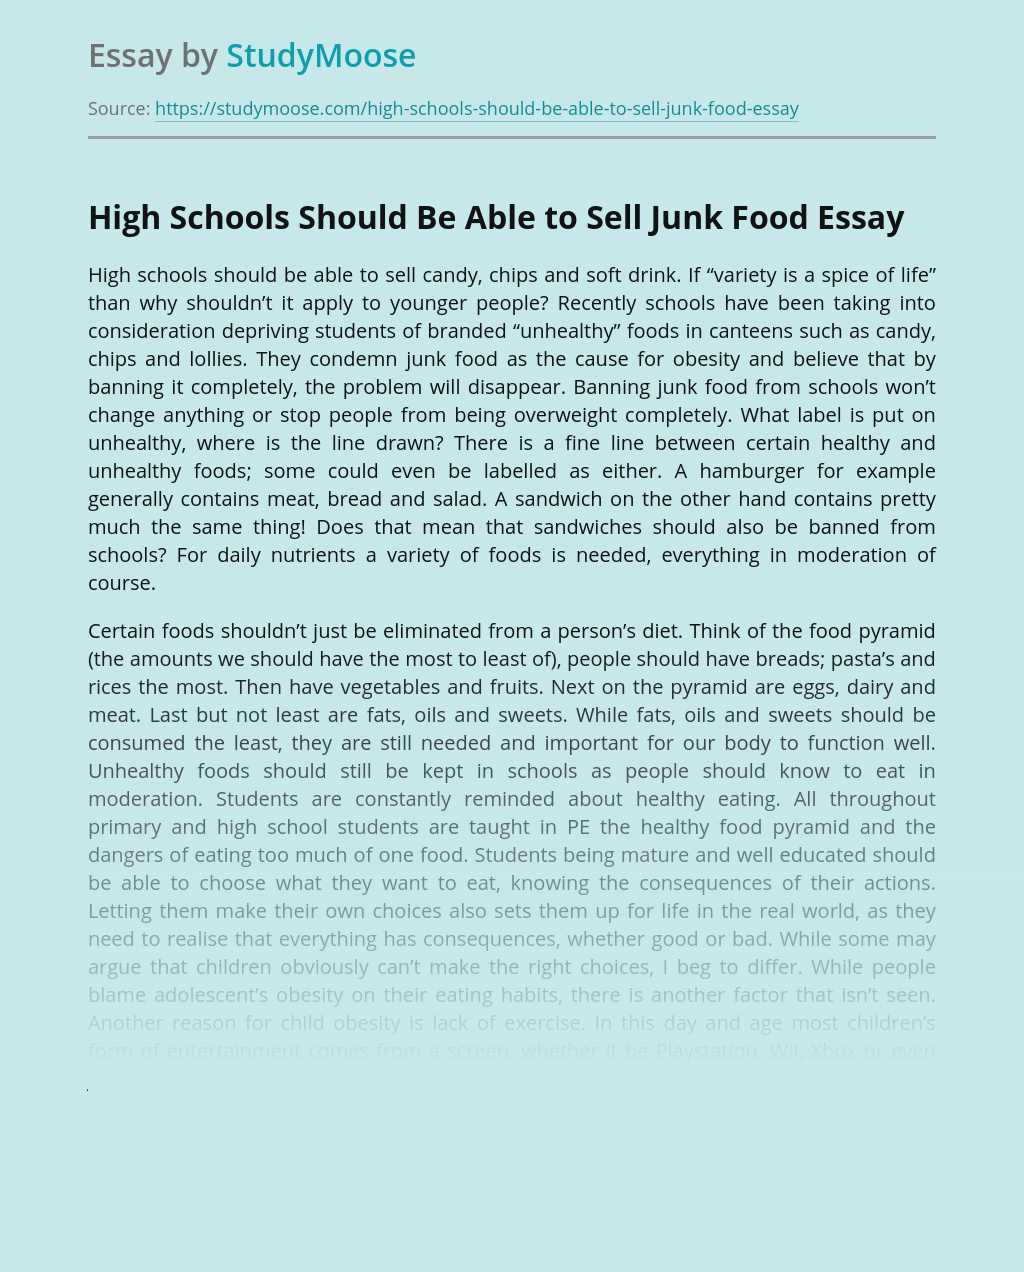 High Schools Should Be Able to Sell Junk Food